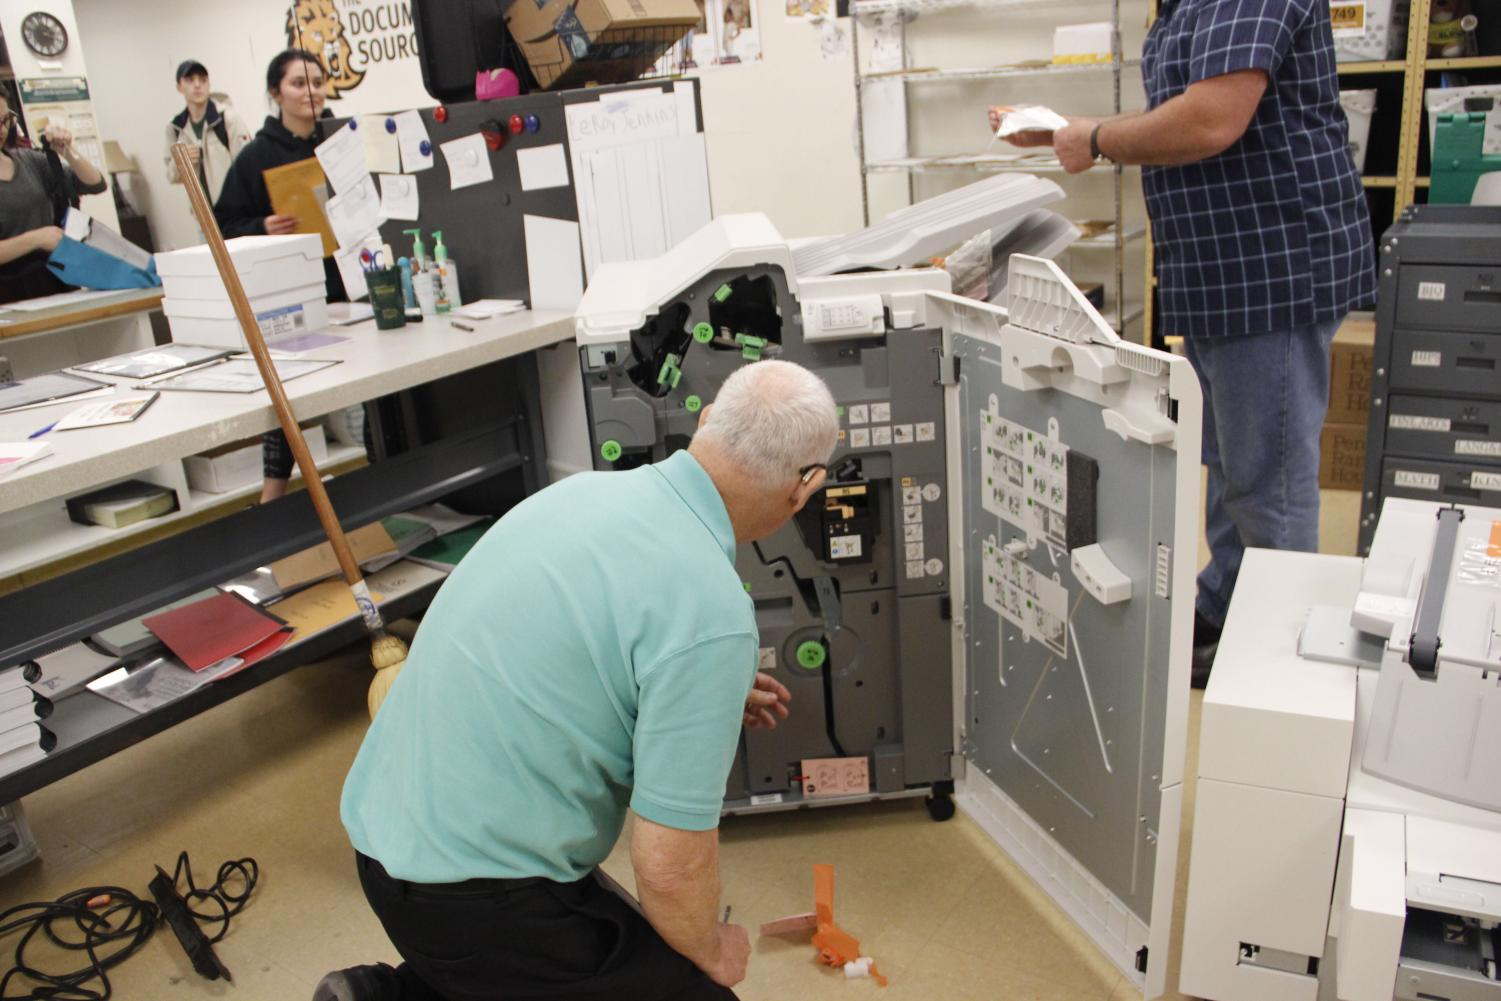 Workers set up the new printing equipment at The Document Source. The office serves students and faculty with their printing and mailing needs.